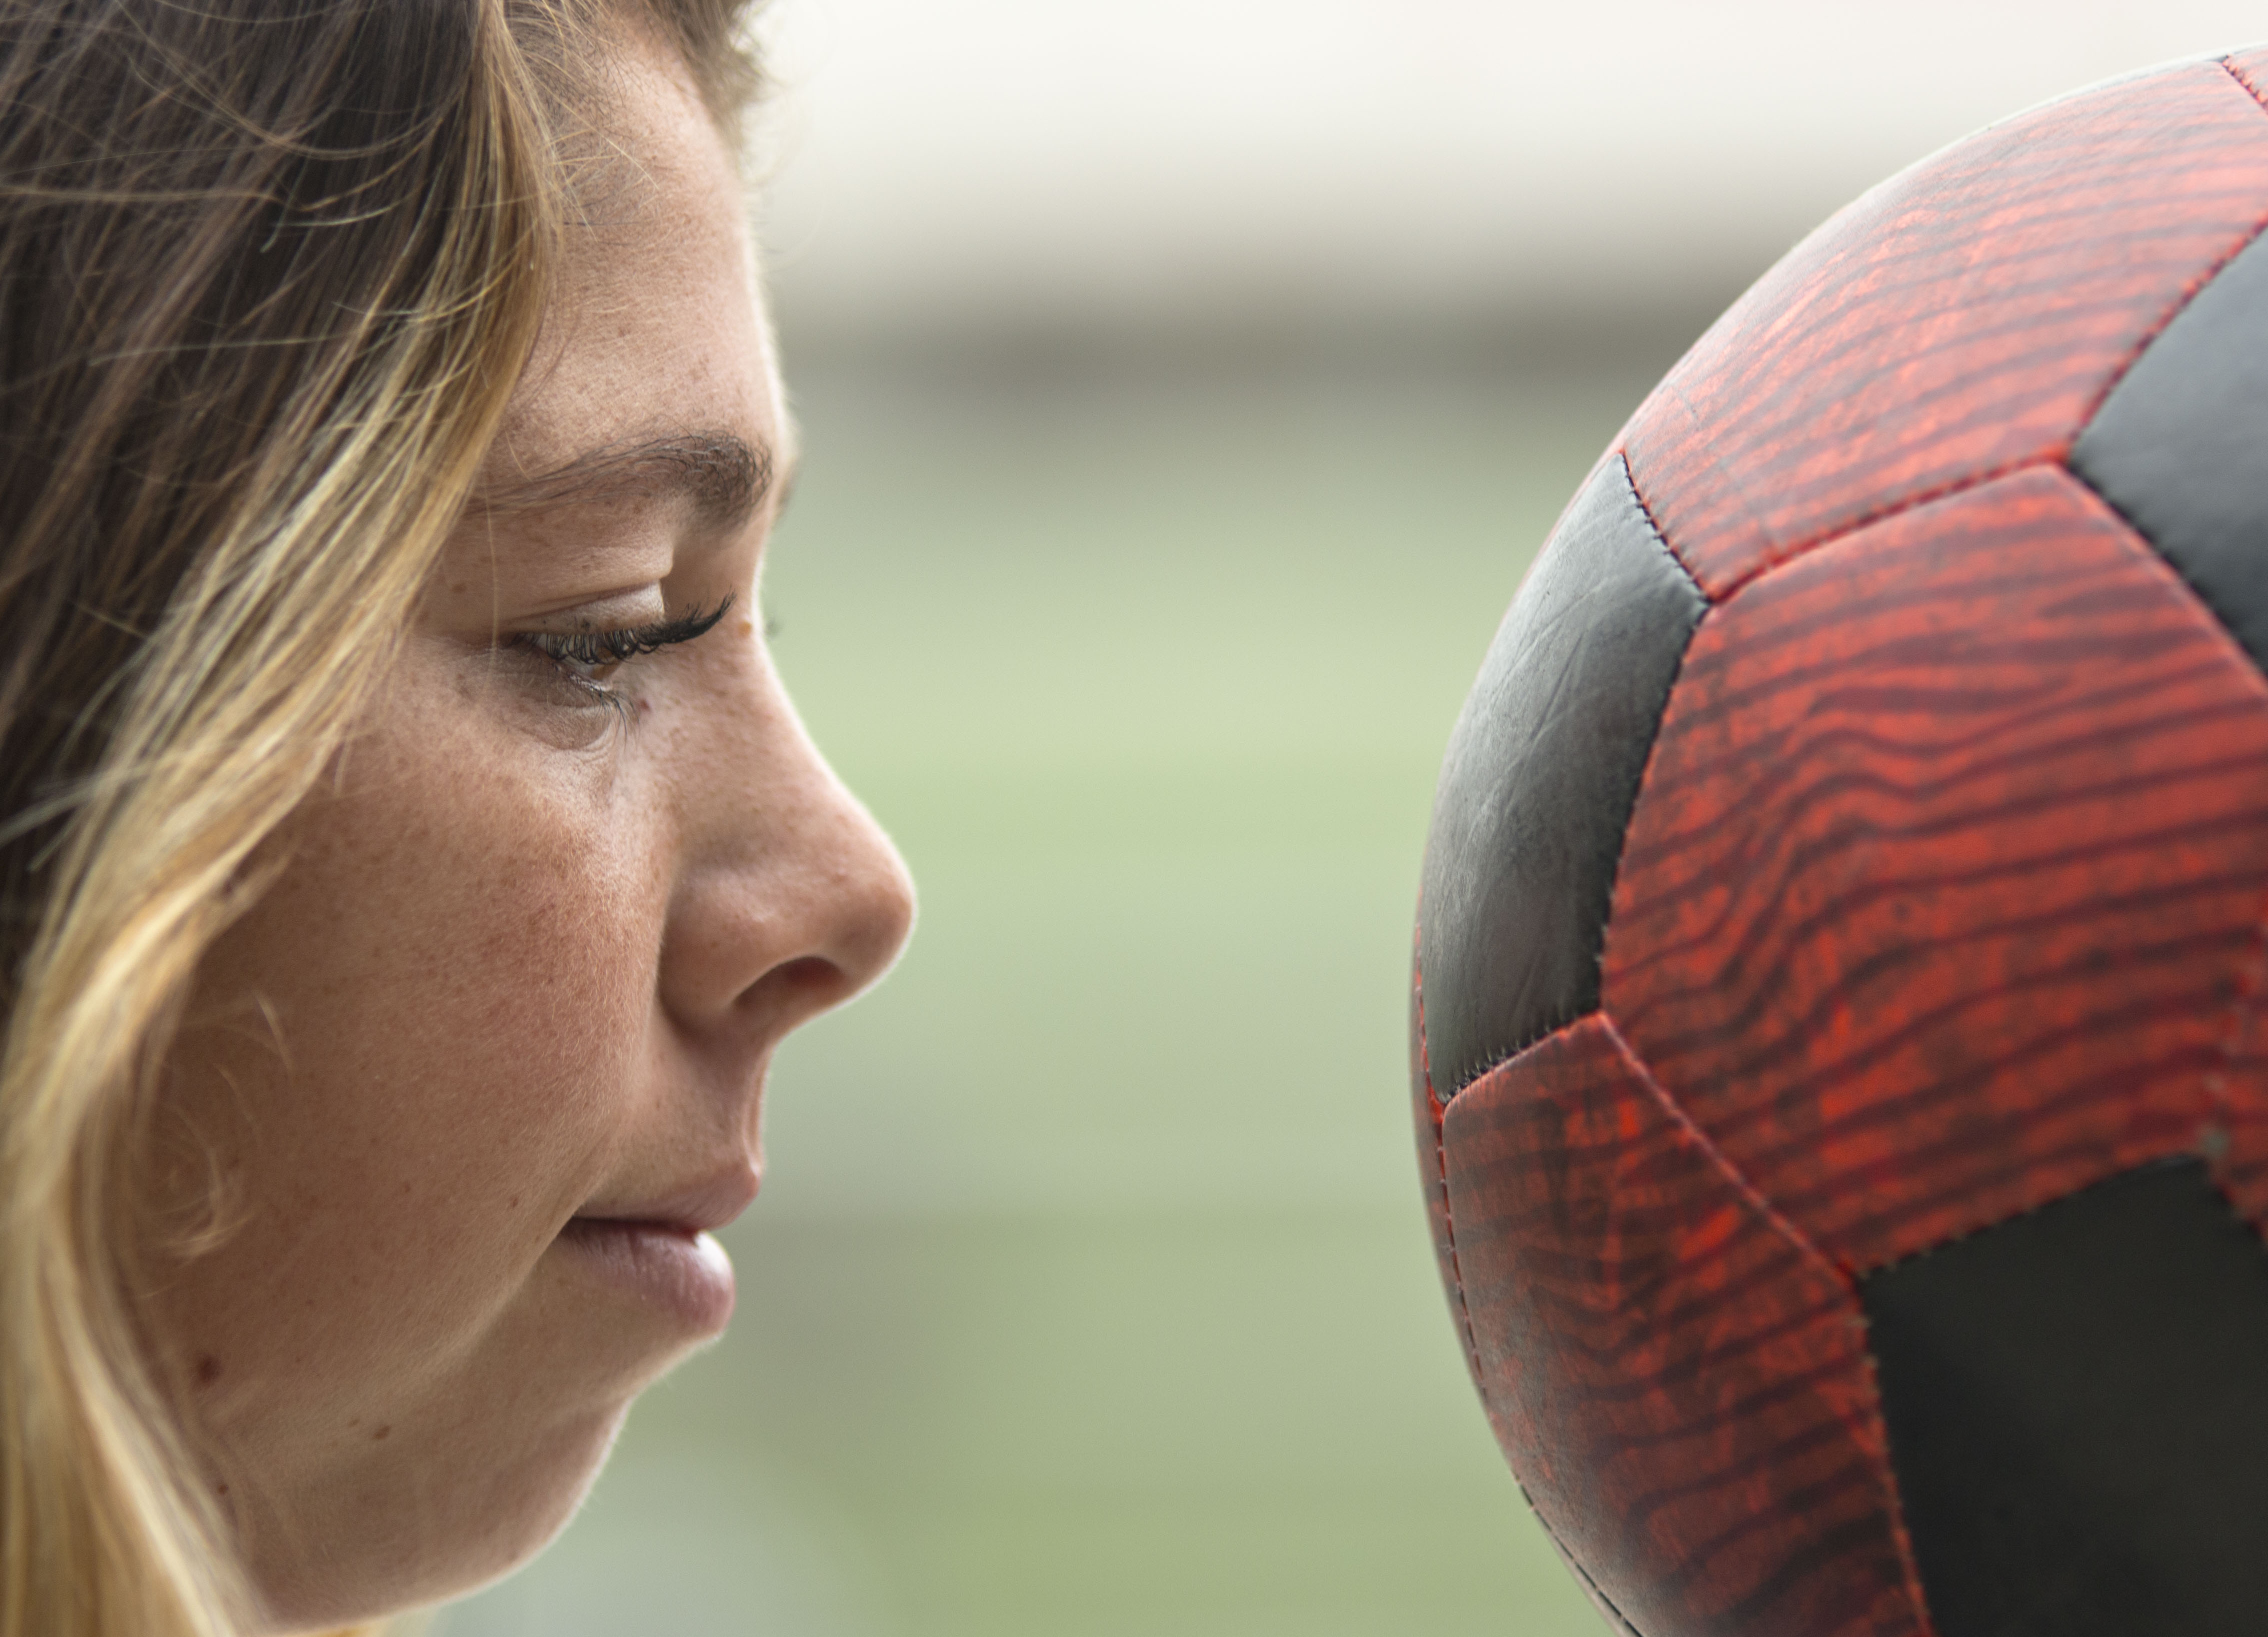 El Camino women's soccer player overcomes obstacles for the love of the game